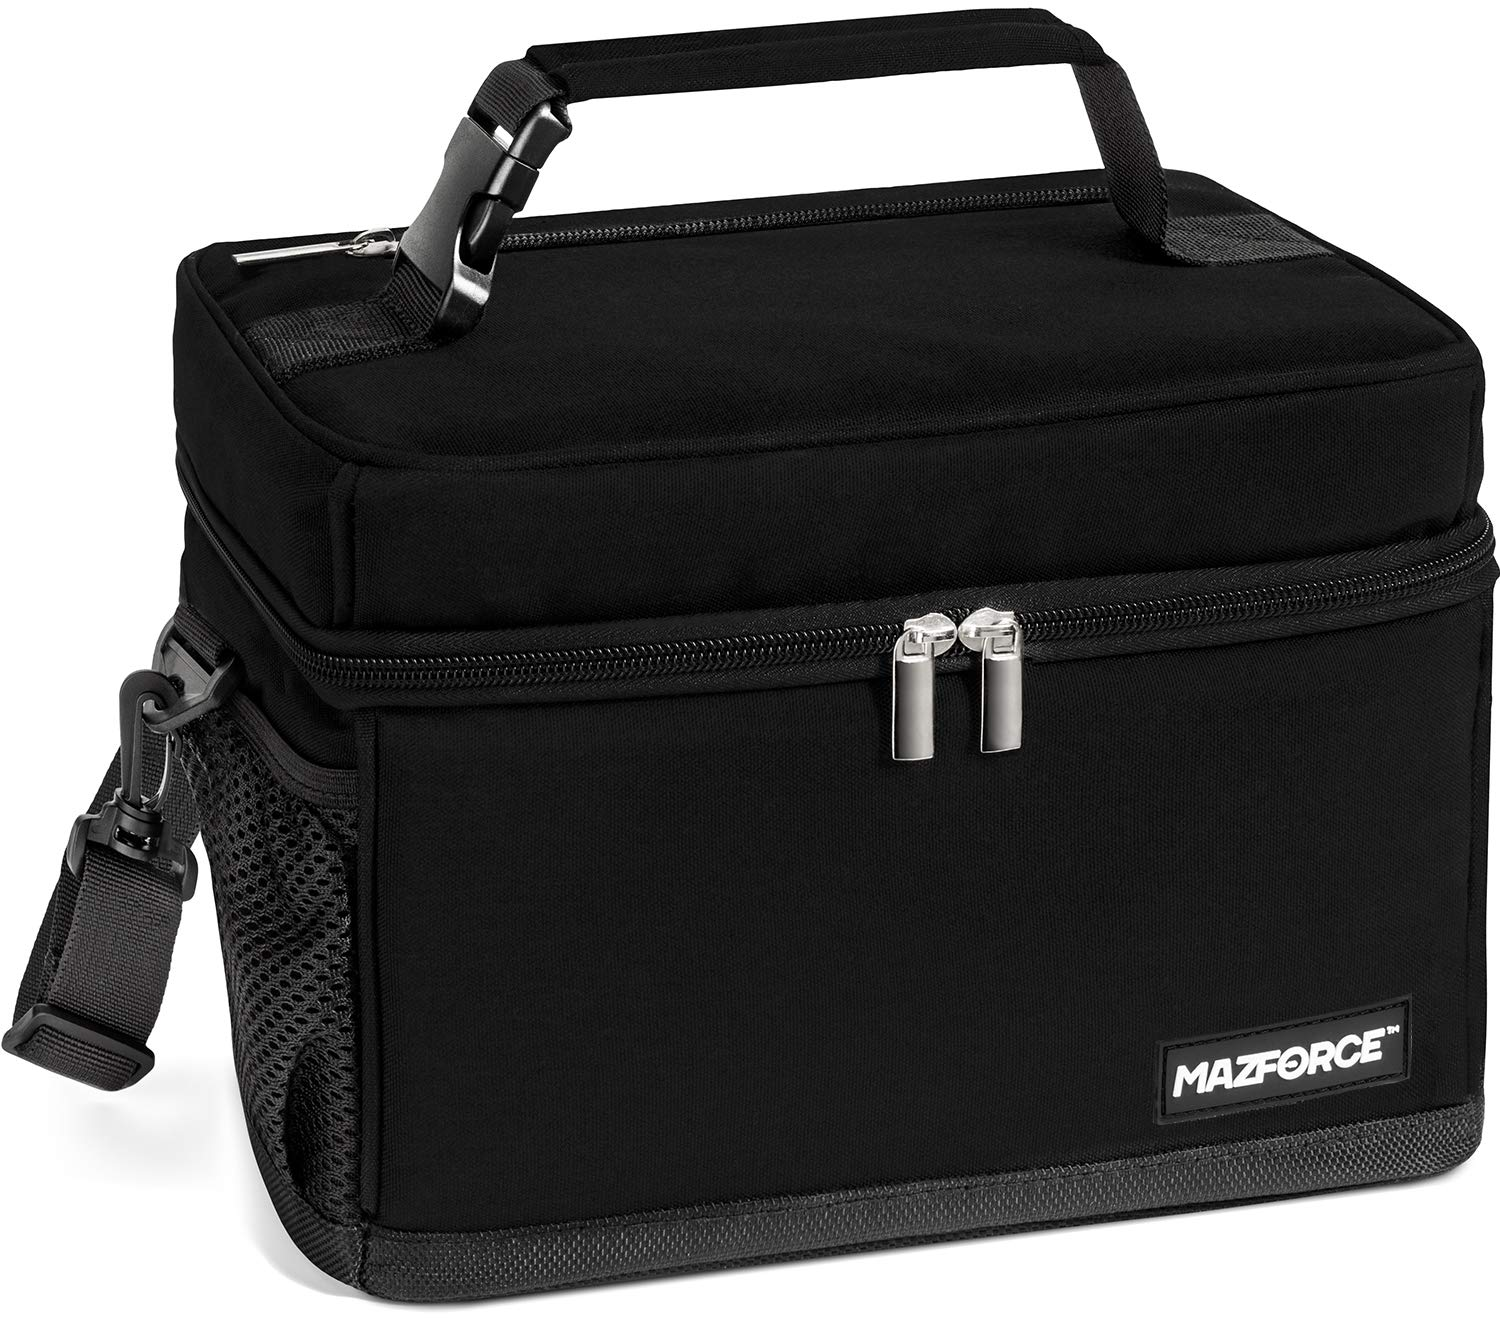 MAZFORCE LongHaul Lunch Box Insulated Lunch Bag - Spacious Pro Performance Adult Lunchbox Built to Withstand your Daily Grind (Lunch Bags Designed in California for Men, Adults, Women - Ultra Black) by MAZFORCE